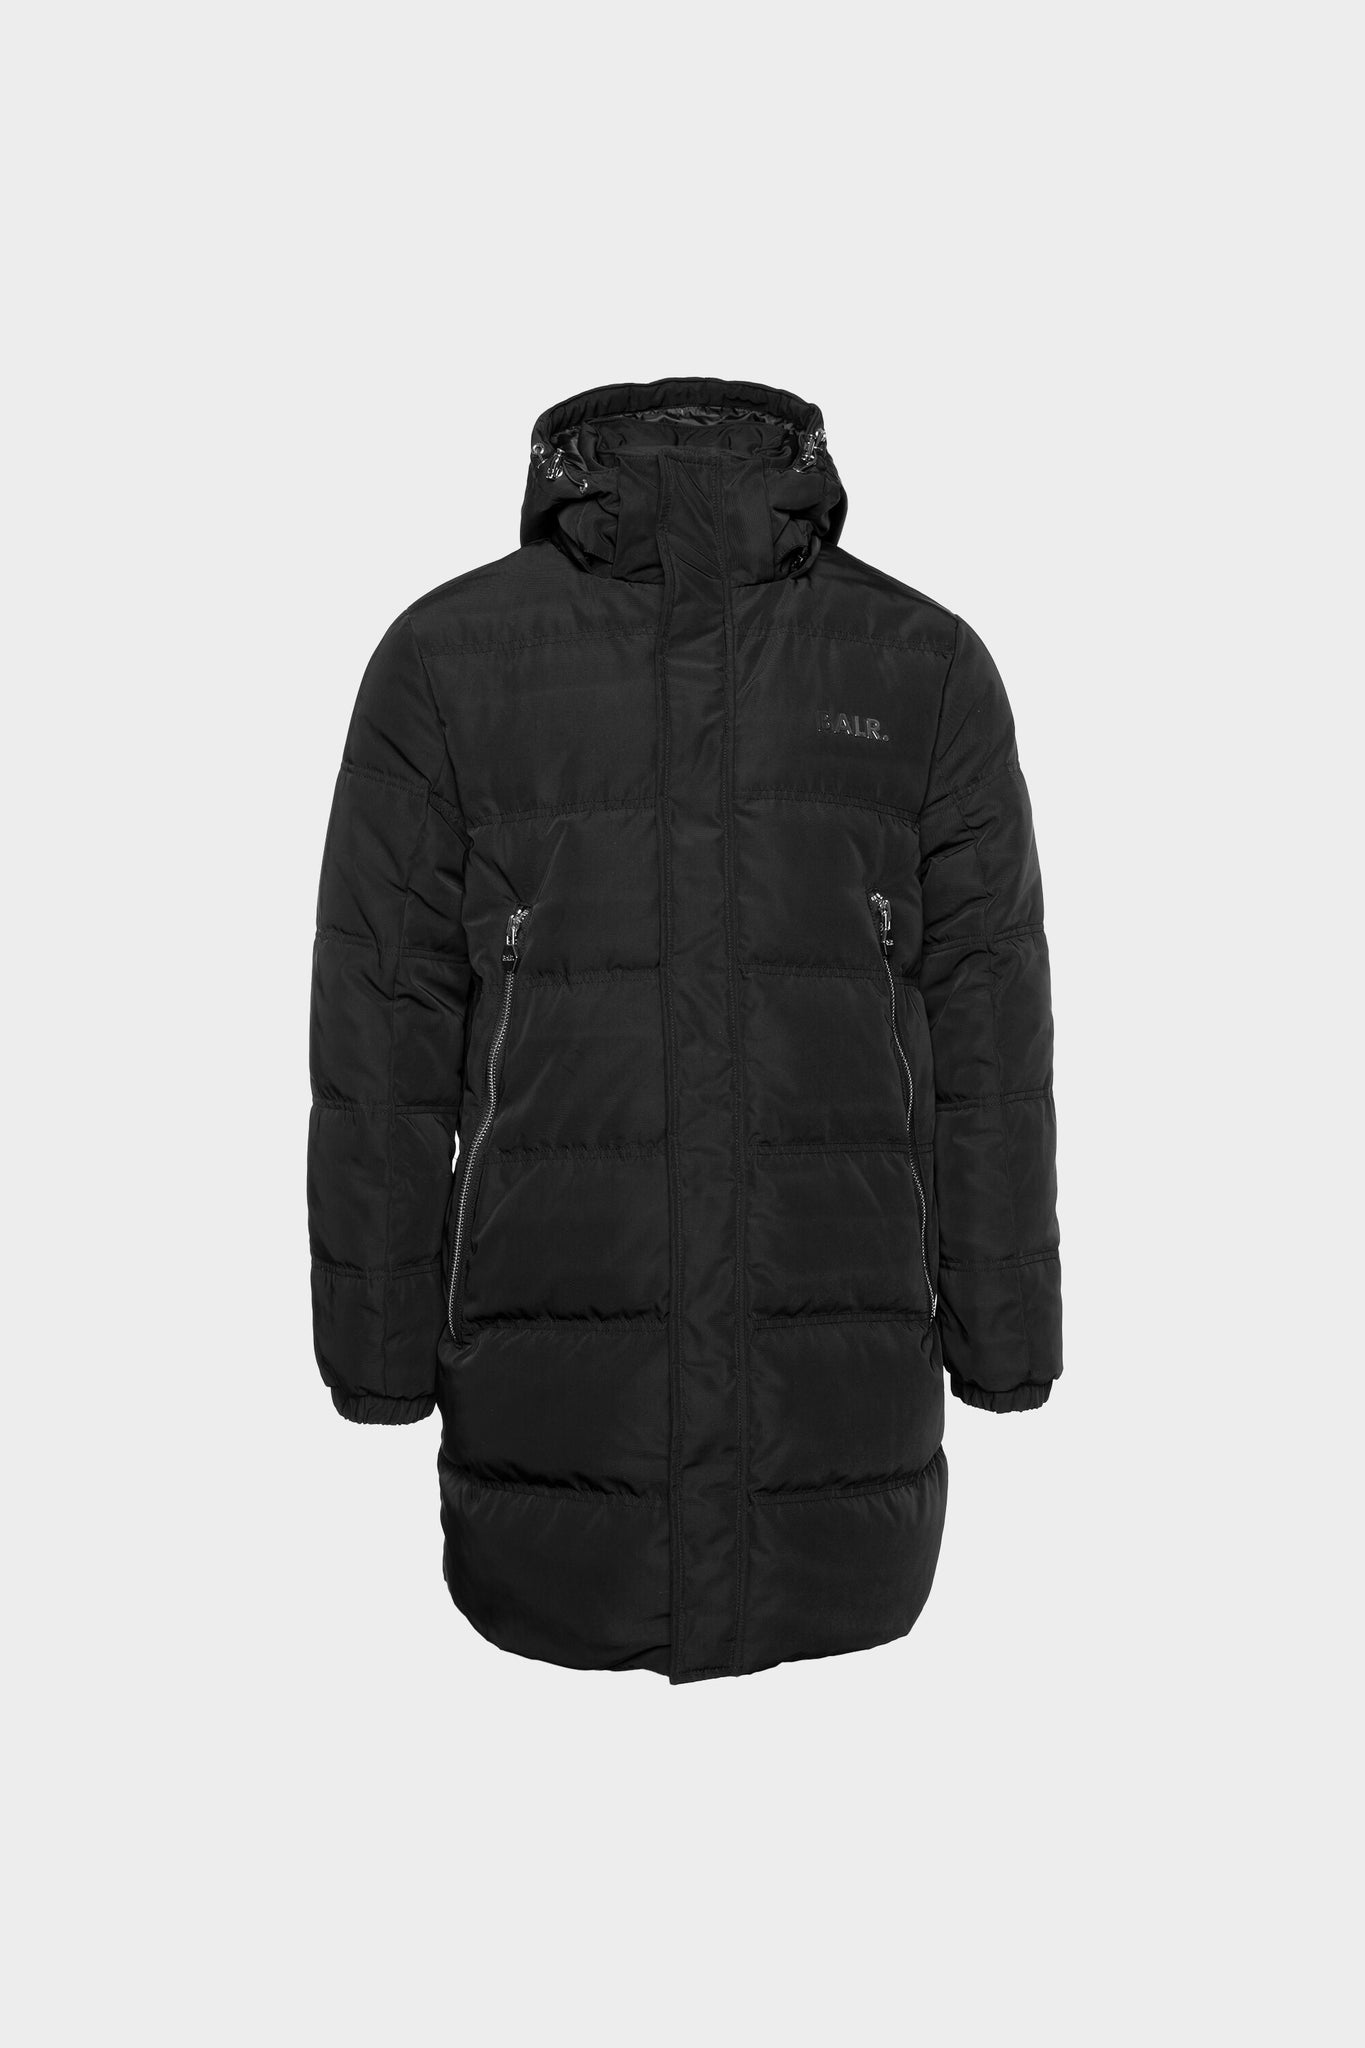 BALR. Long Parka Down Jacket Black